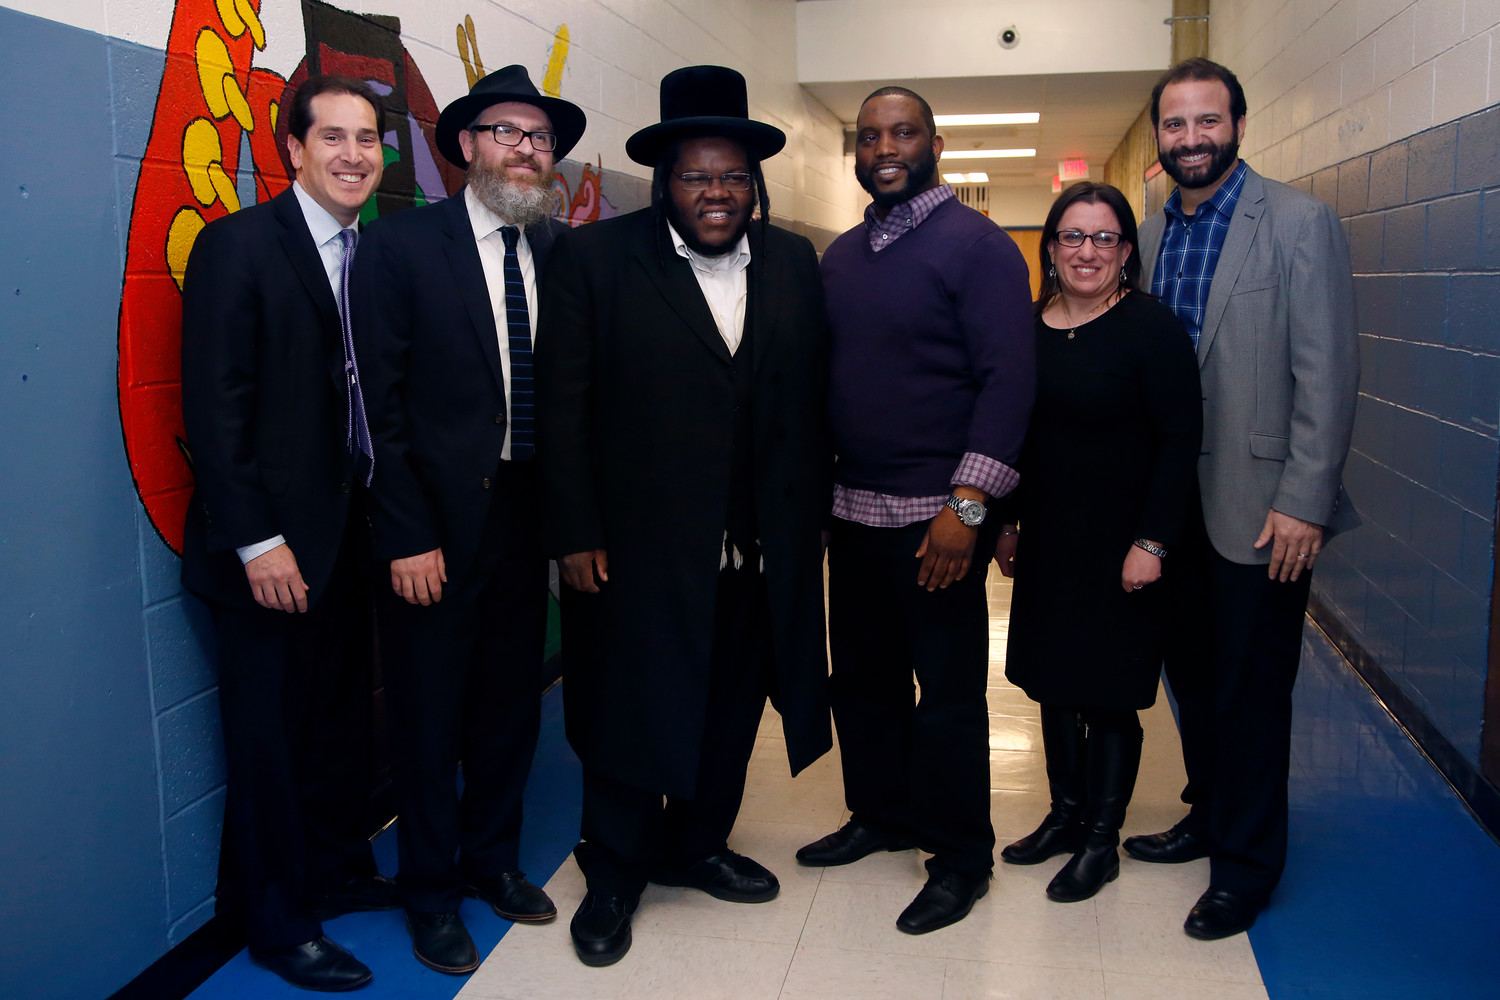 State Sen. Todd Kaminsky, left, with Rabbi Eli Goodman, rapper Nissim Black, Martin Luther King Center board chairman James Hodge, City Council Vice President Chumi Diamond and City Council President Anthony Eramo at the concert.